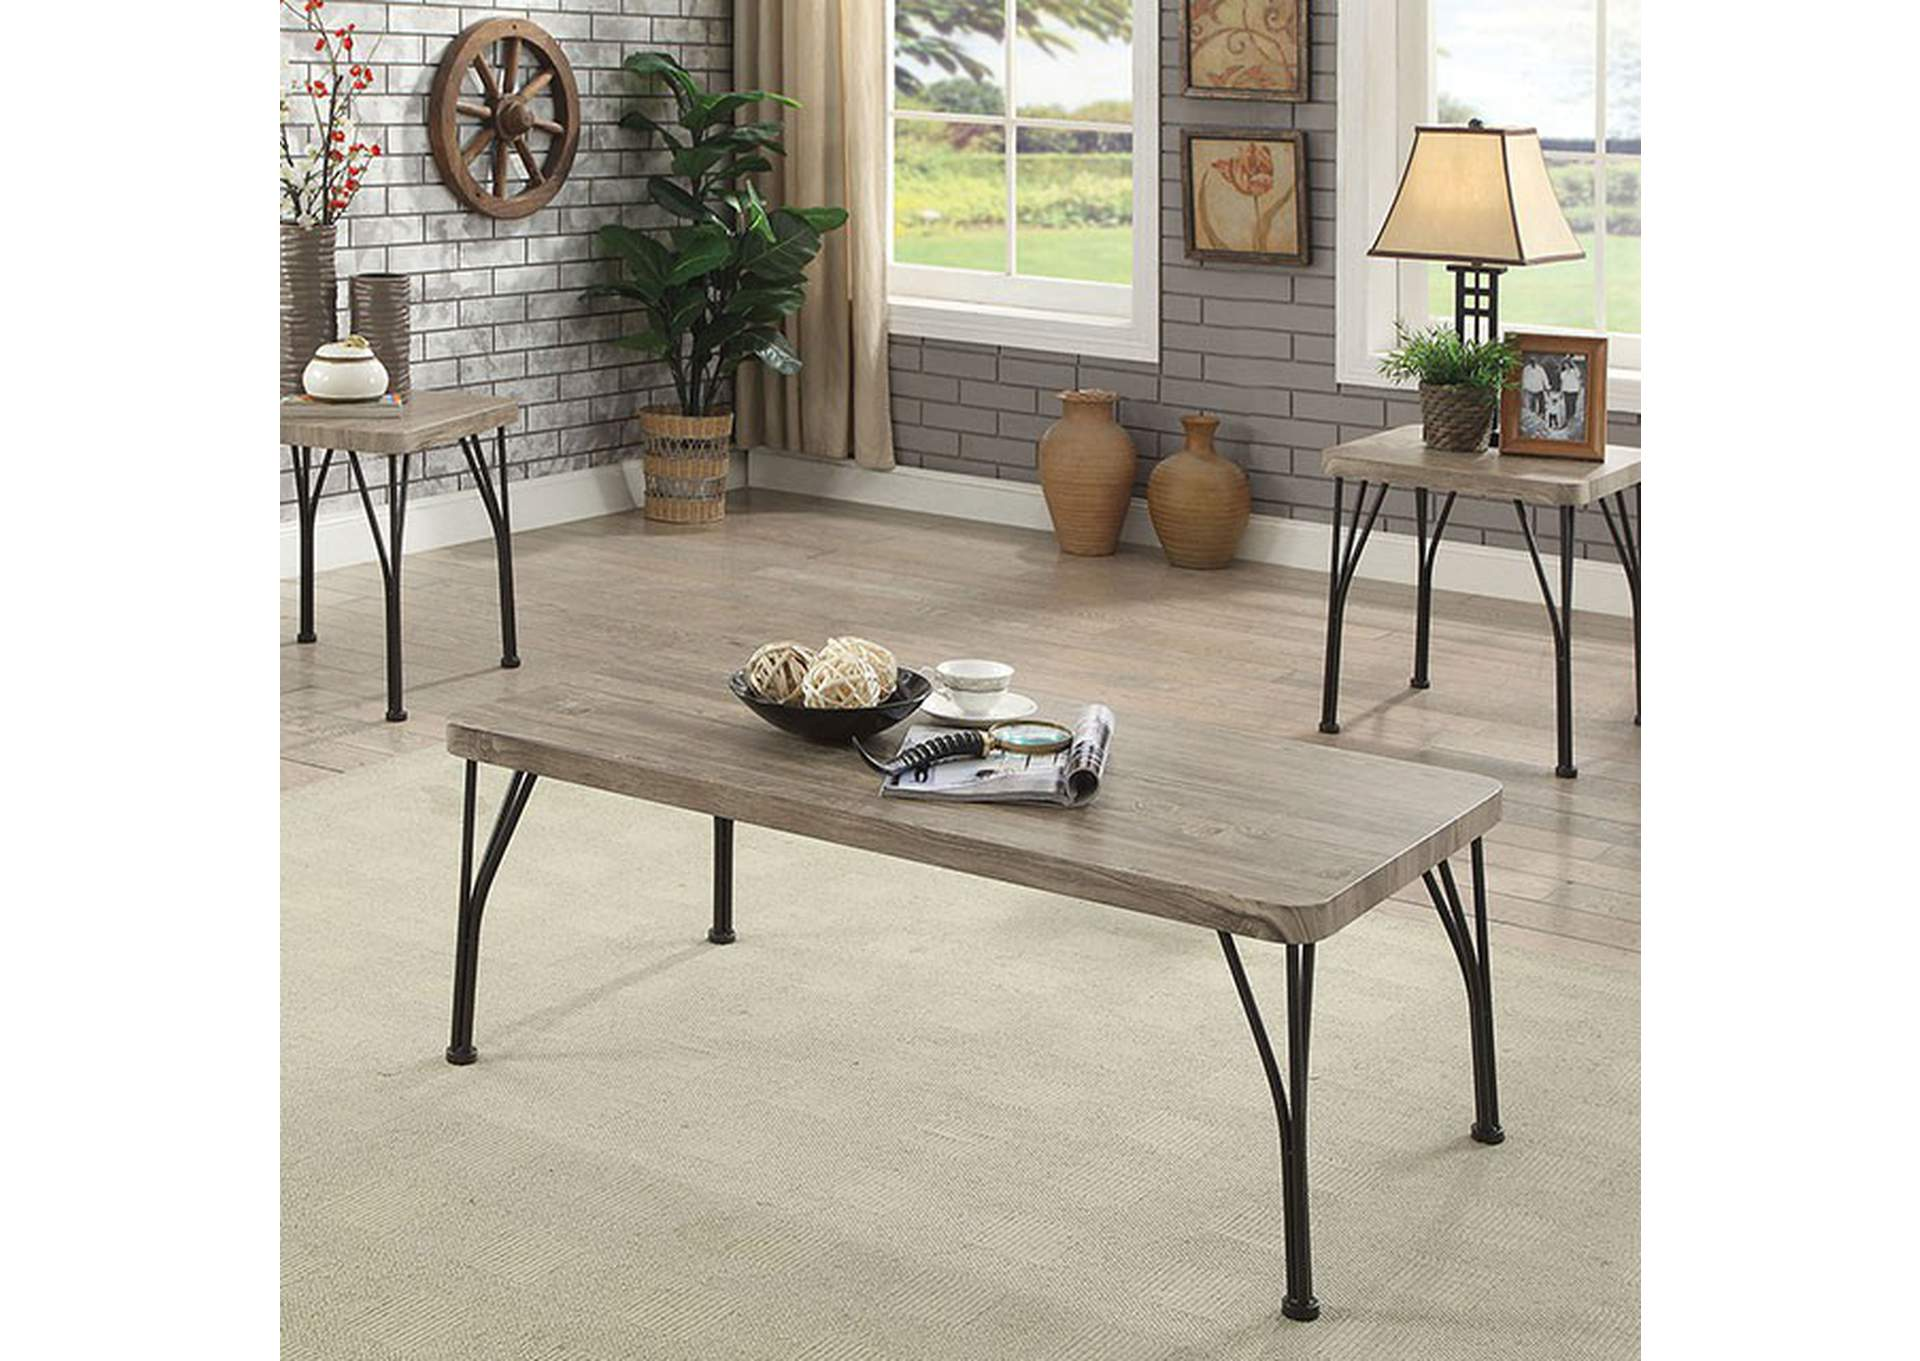 Majorca Gray/Dark Bronze 3 Piece Set,Furniture of America